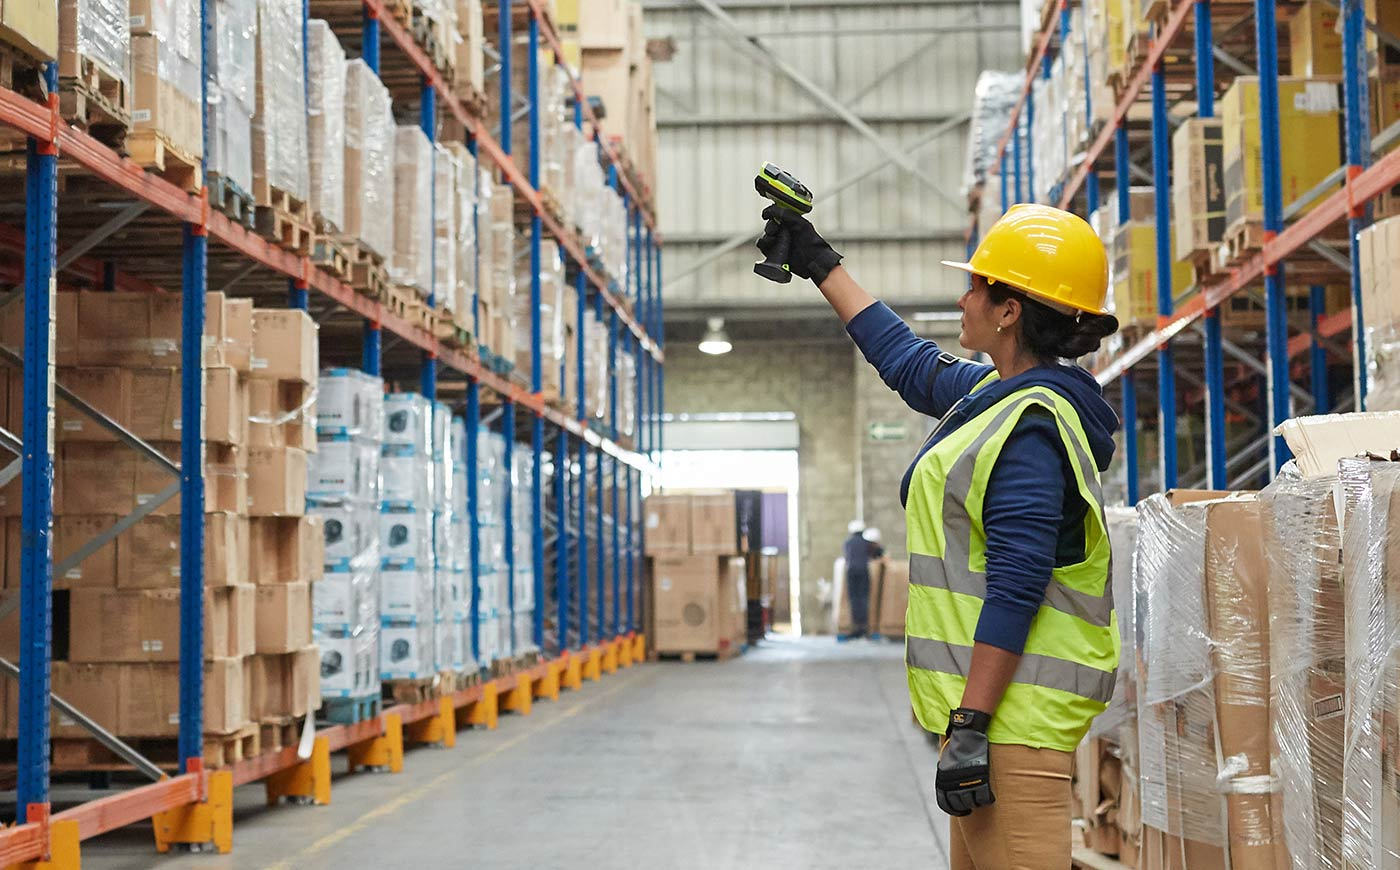 Warehouse worker scanning product on high shelf